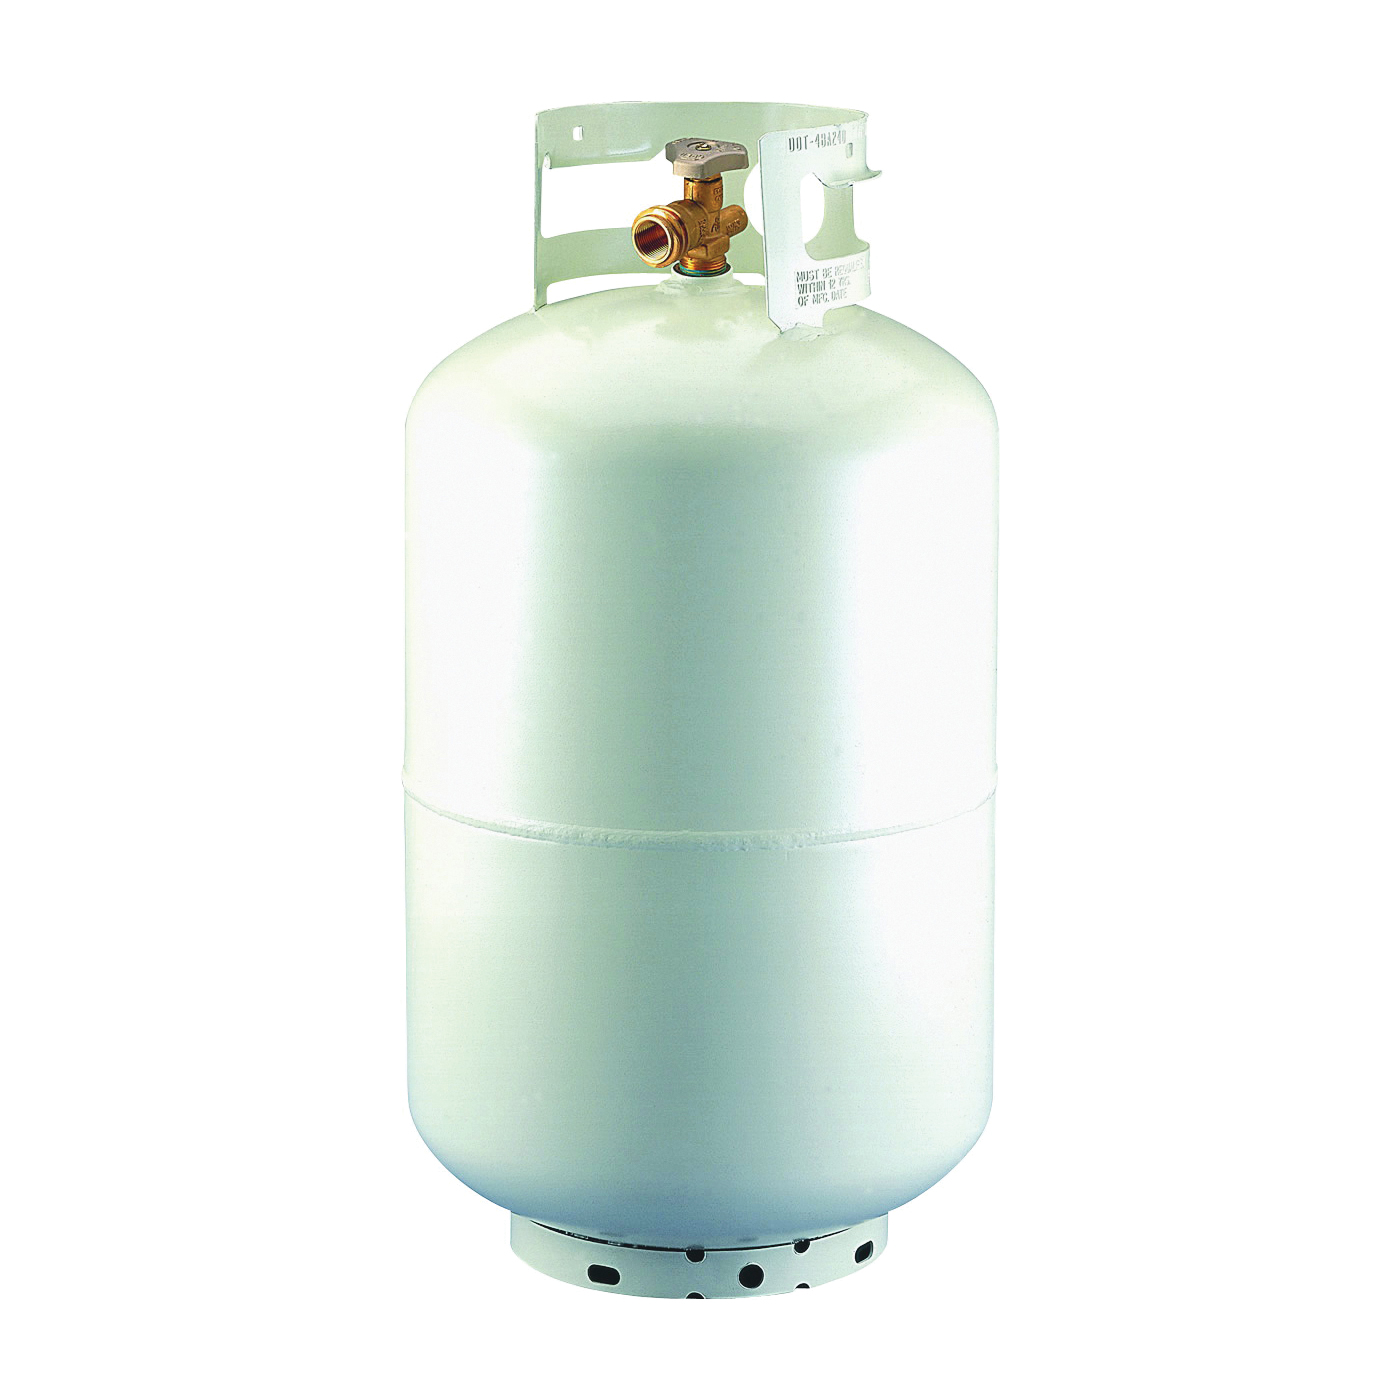 Picture of Worthington 296975 Propane Gas Cylinder, 7.1 gal Tank, Steel